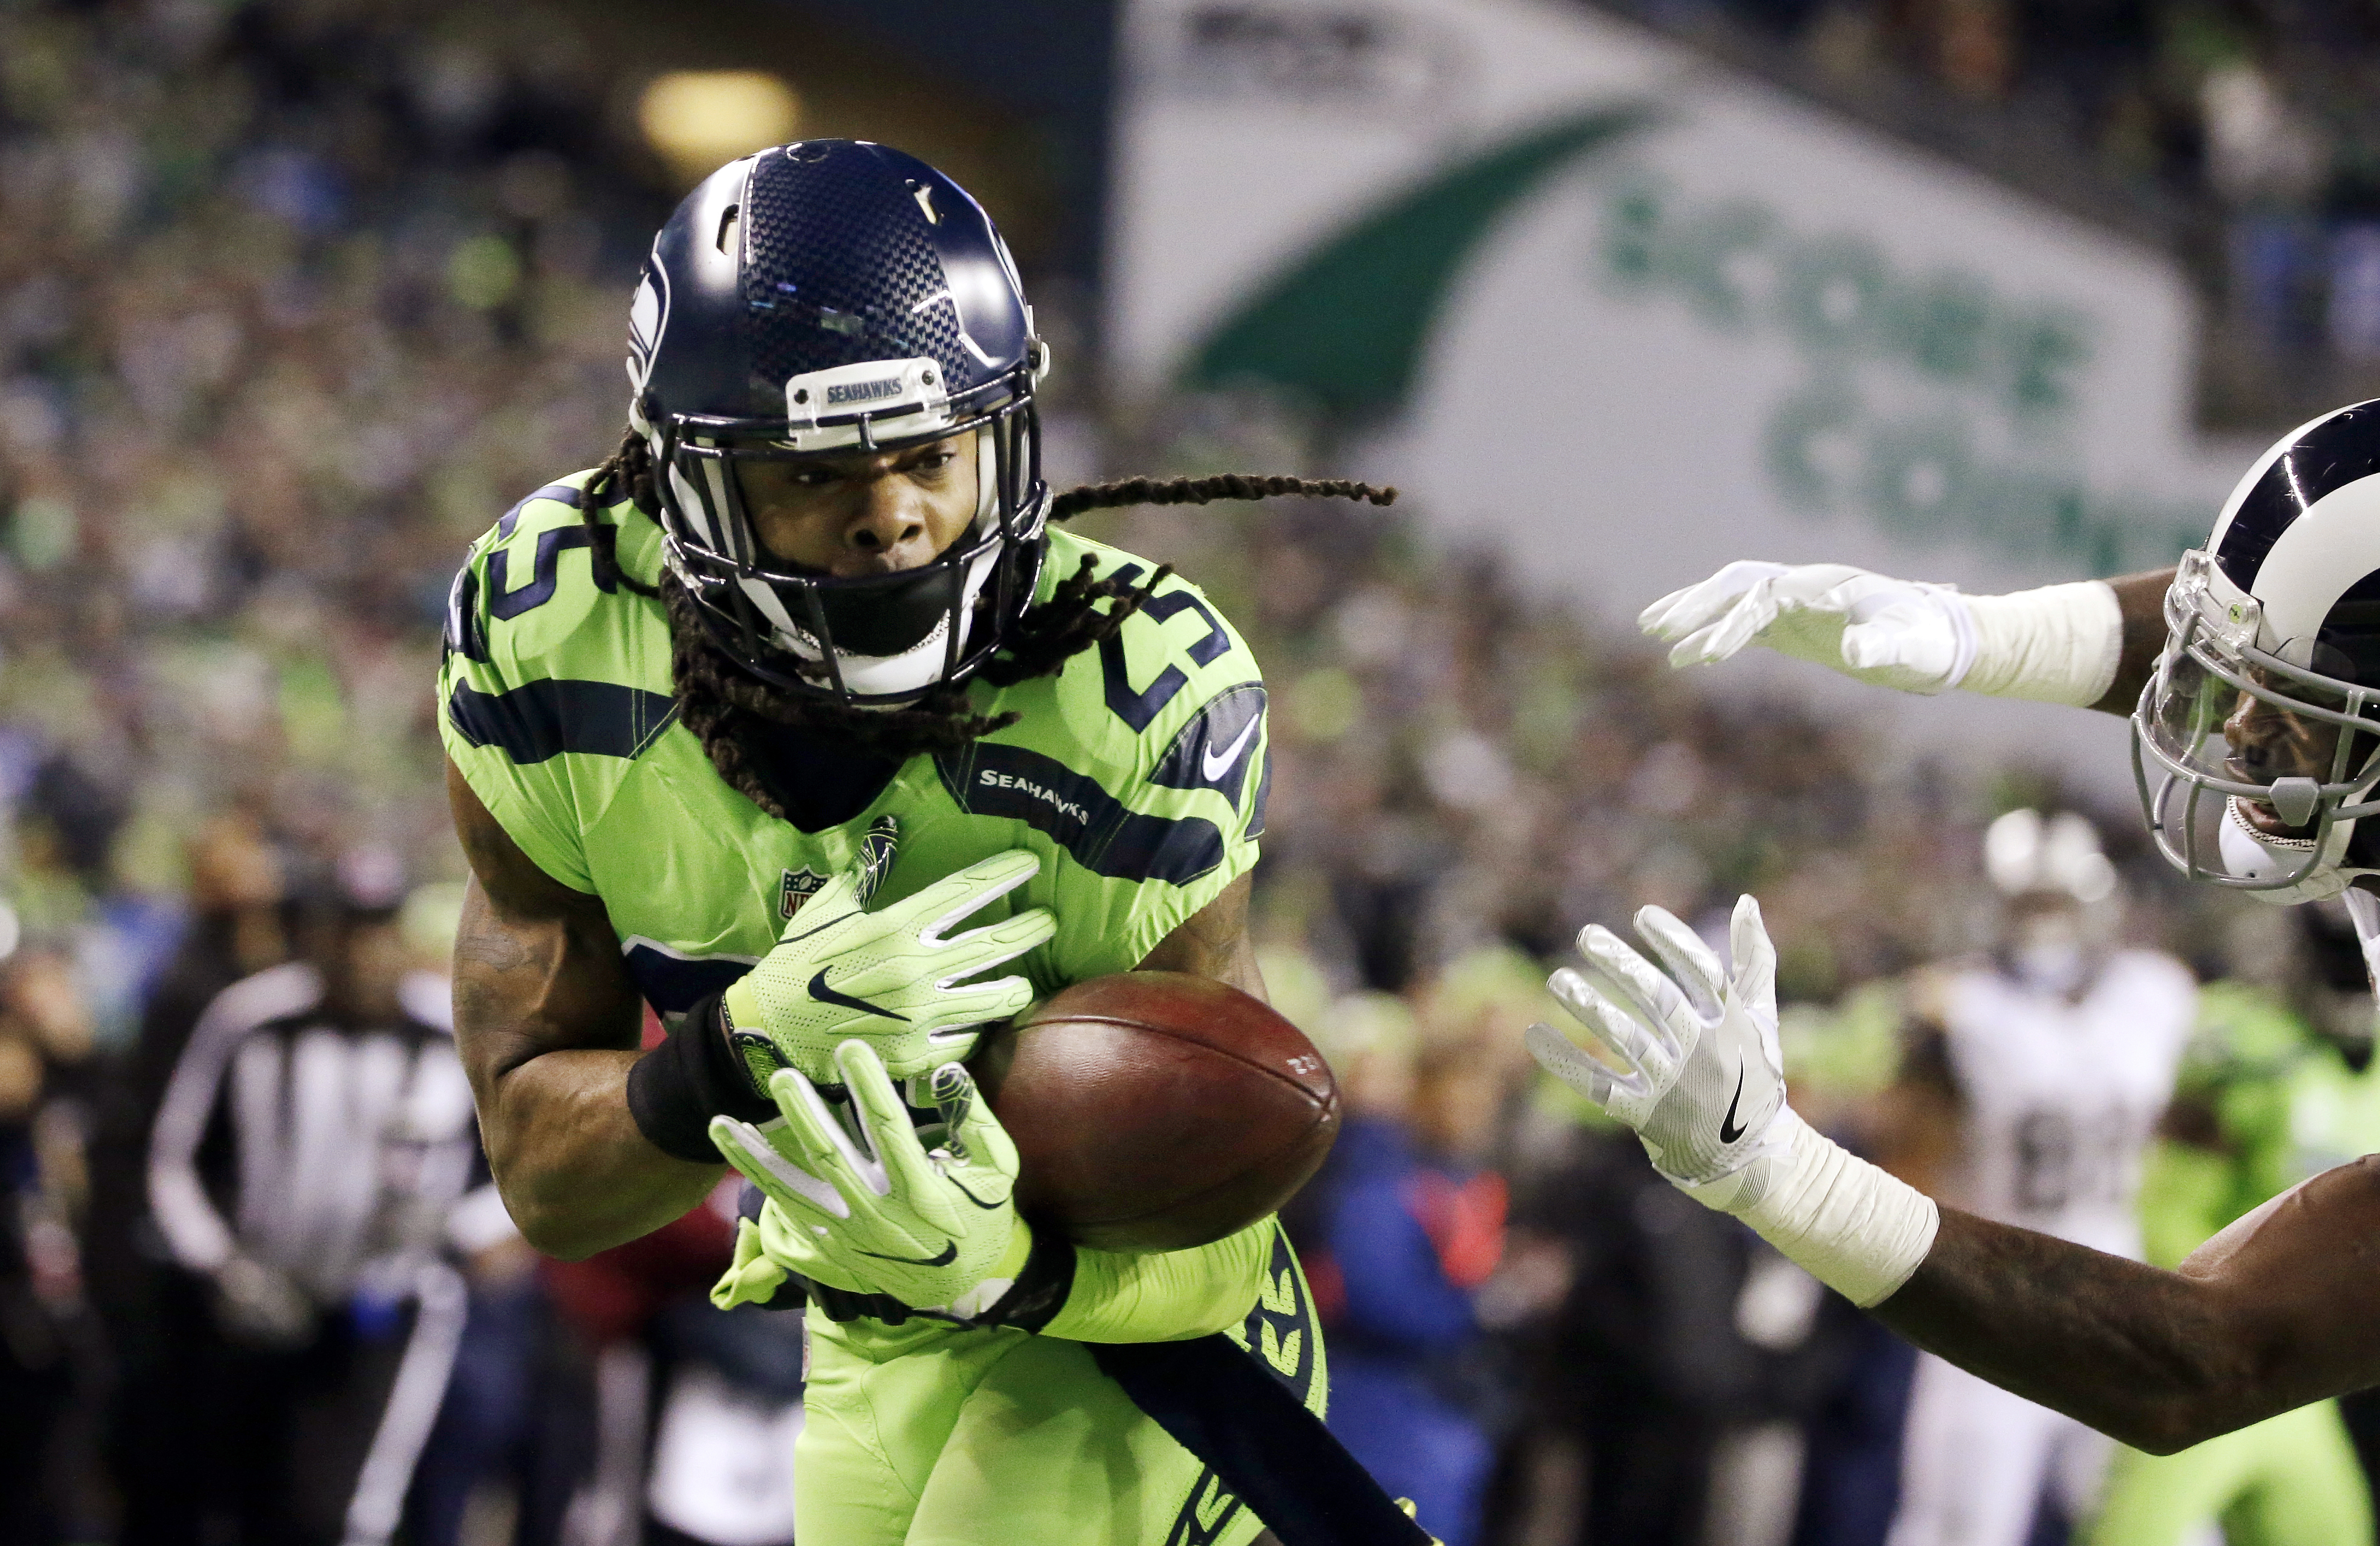 Seattle Seahawks cornerback Richard Sherman, left, bobbles a pass intended for Los Angeles Rams wide receiver Kenny Britt, right, in the first half of an NFL football game, Thursday, Dec. 15, 2016, in Seattle. (AP Photo/Elaine Thompson)